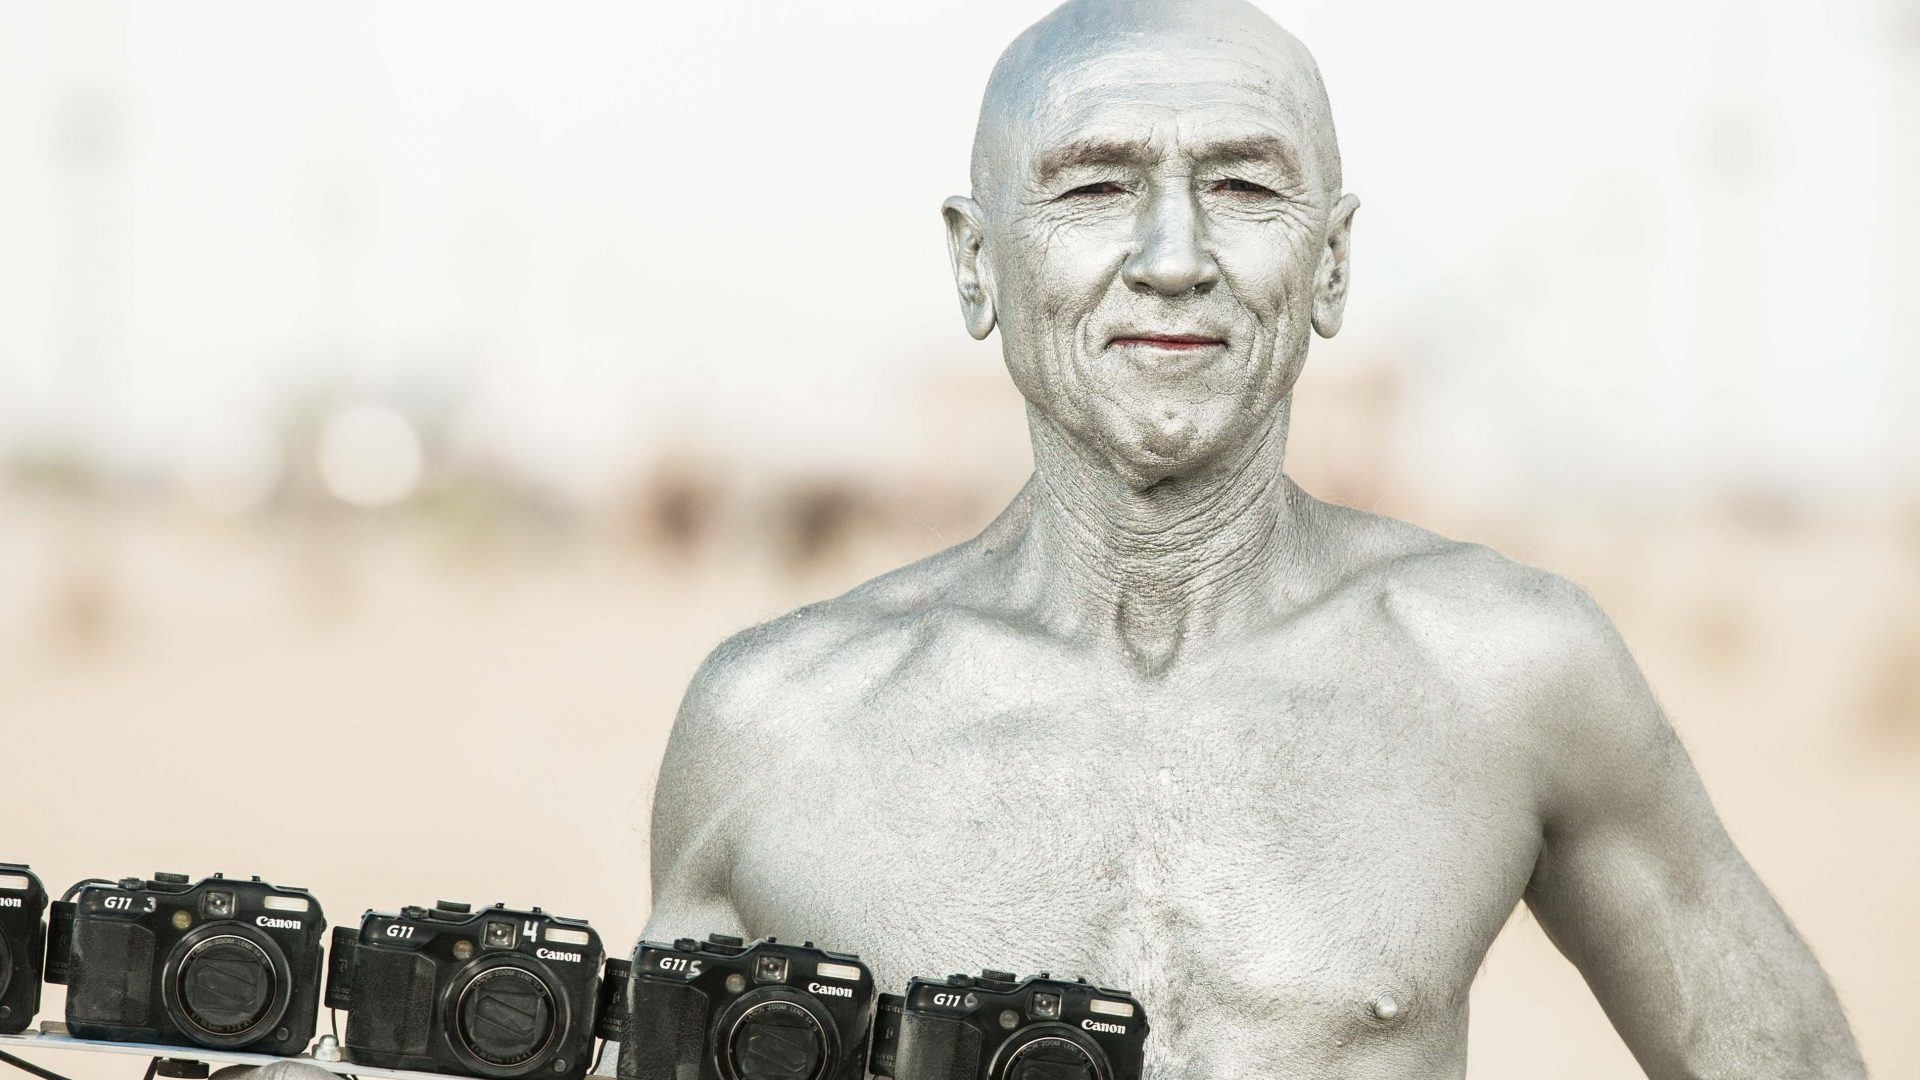 A man painted in silver presents a row of cameras at Burning Man.